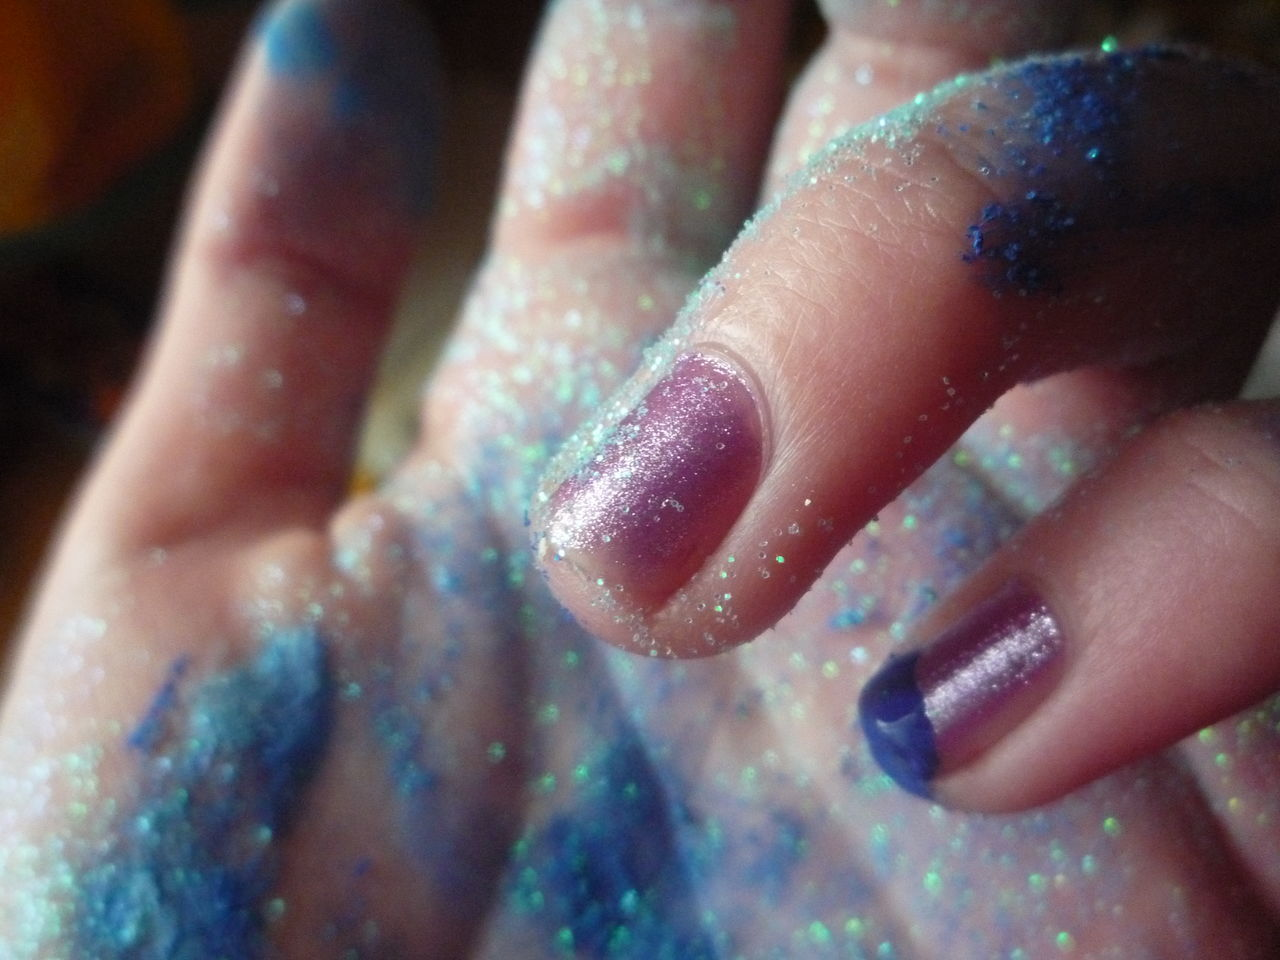 real people, human body part, one person, human finger, human hand, low section, lifestyles, close-up, human leg, fun, indoors, leisure activity, nail polish, multi colored, day, women, childhood, water, glitter, people, adult